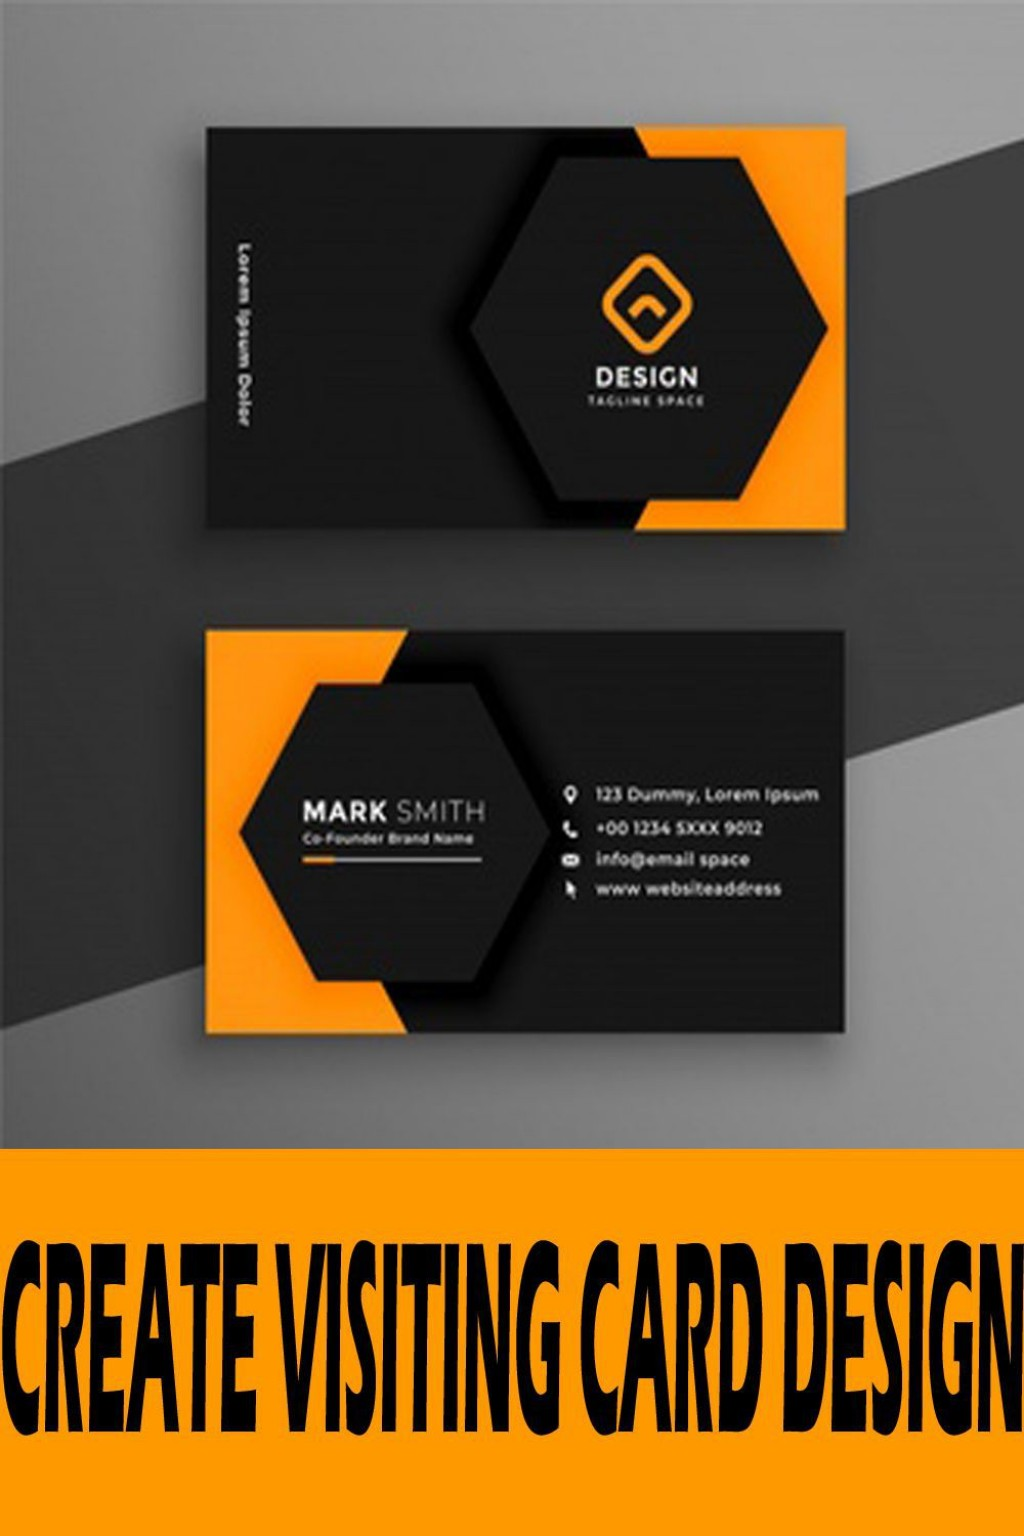 000 Fascinating Blank Busines Card Template Psd Free Download Example  PhotoshopLarge